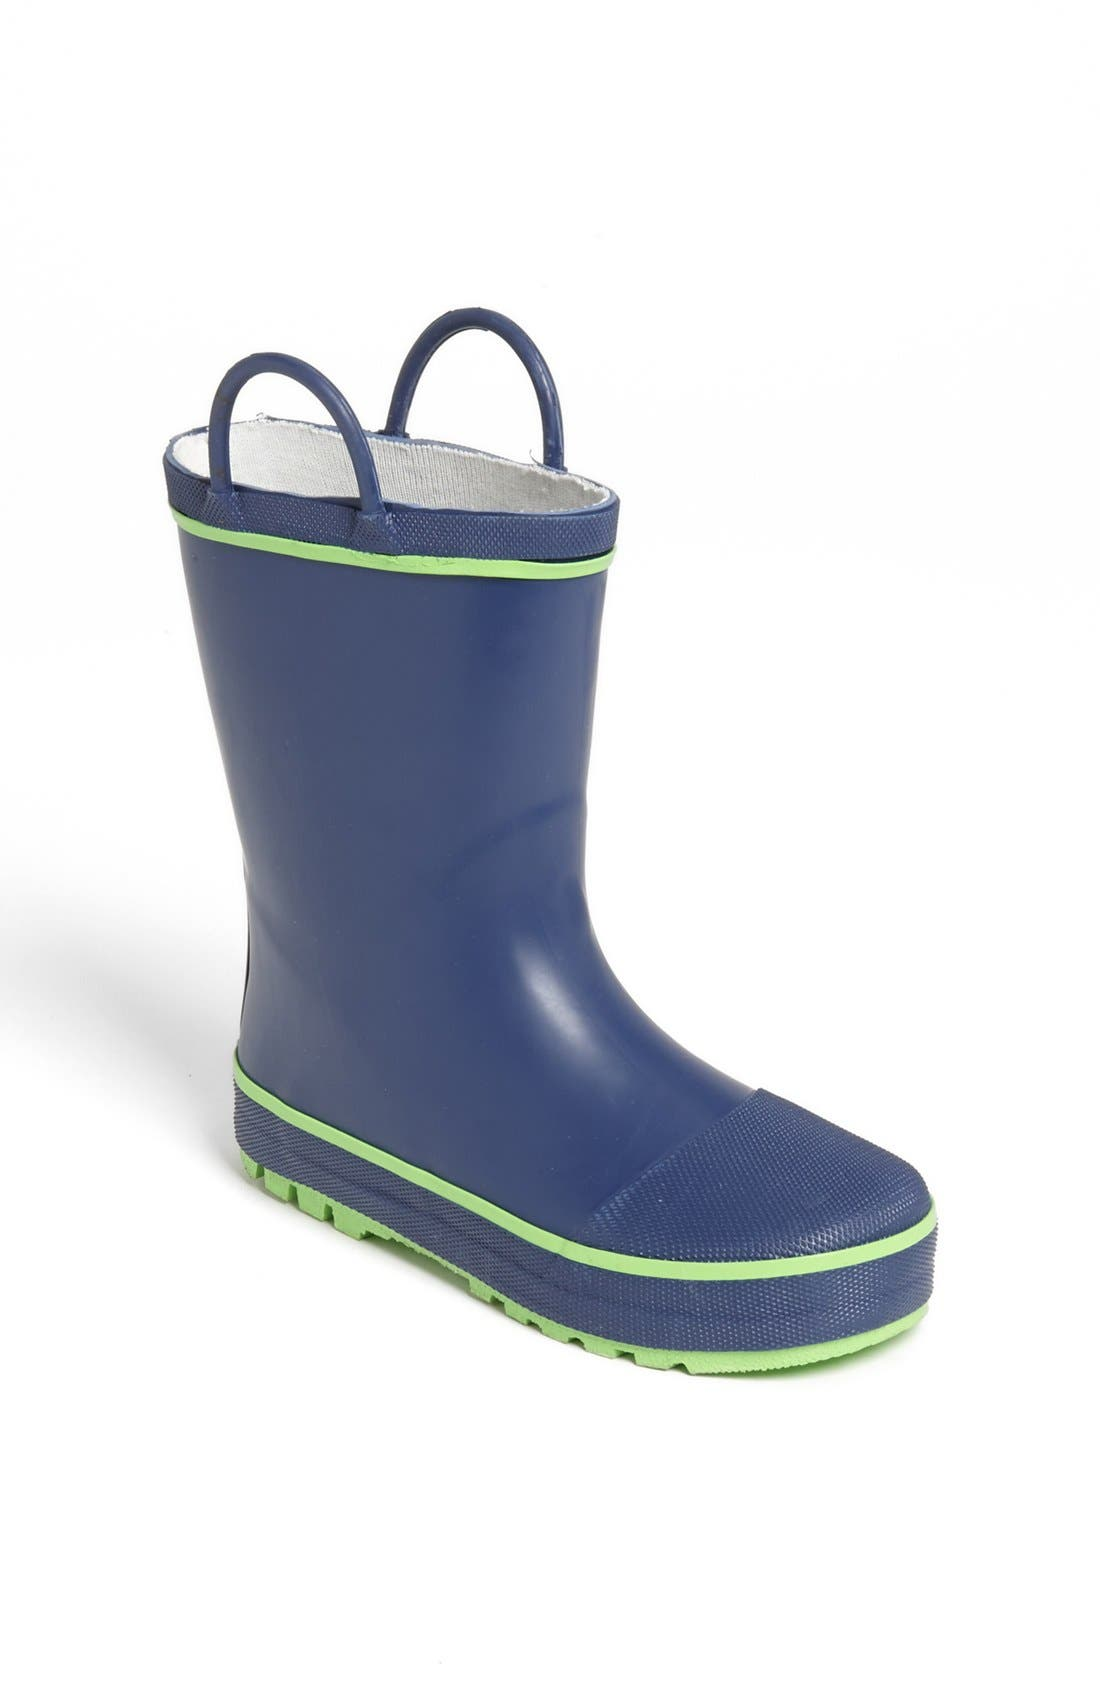 Alternate Image 1 Selected - Nordstrom 'Downpour' Rain Boot (Walker, Toddler &  Little Kid)